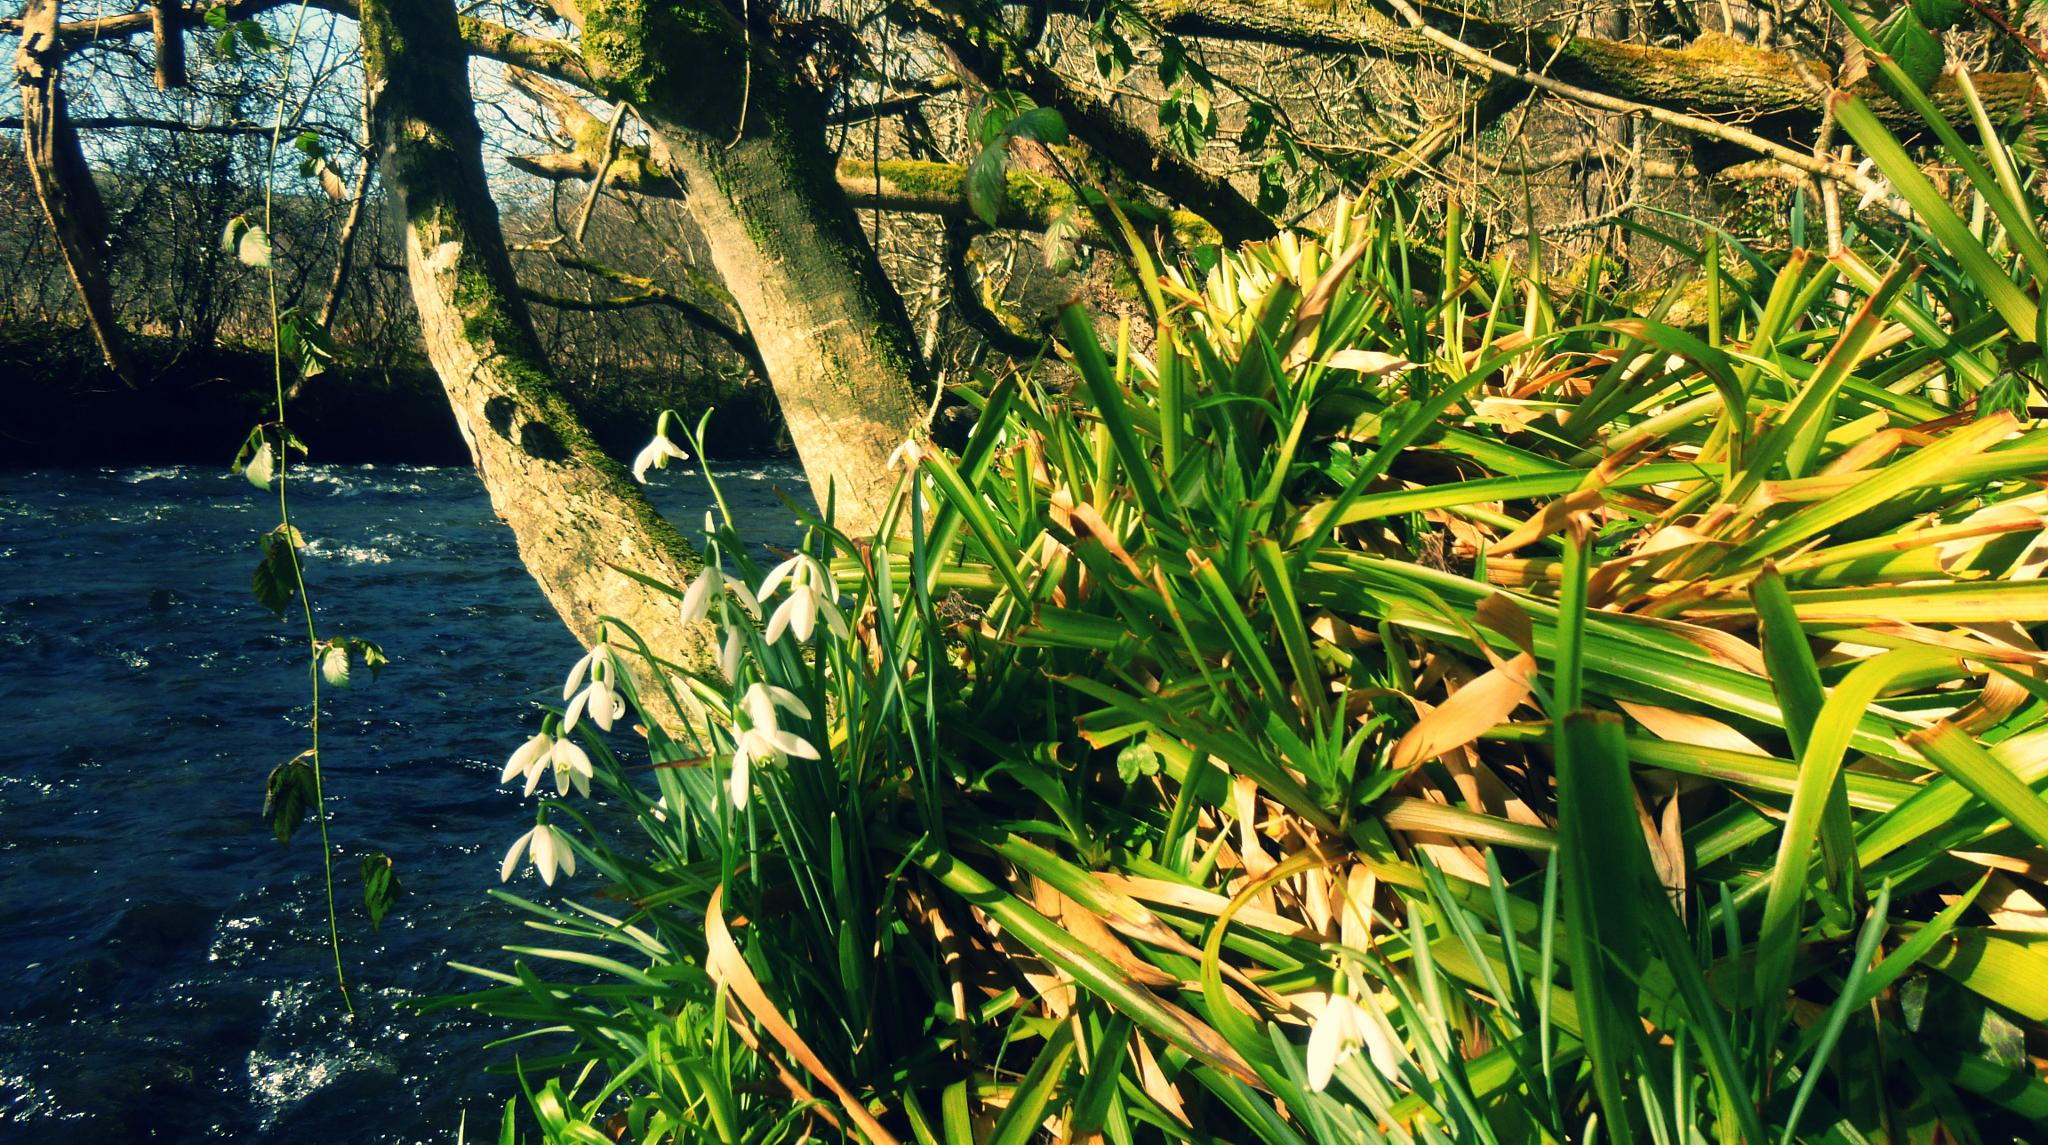 snowdrops by the river aeron by chris.adams.3557